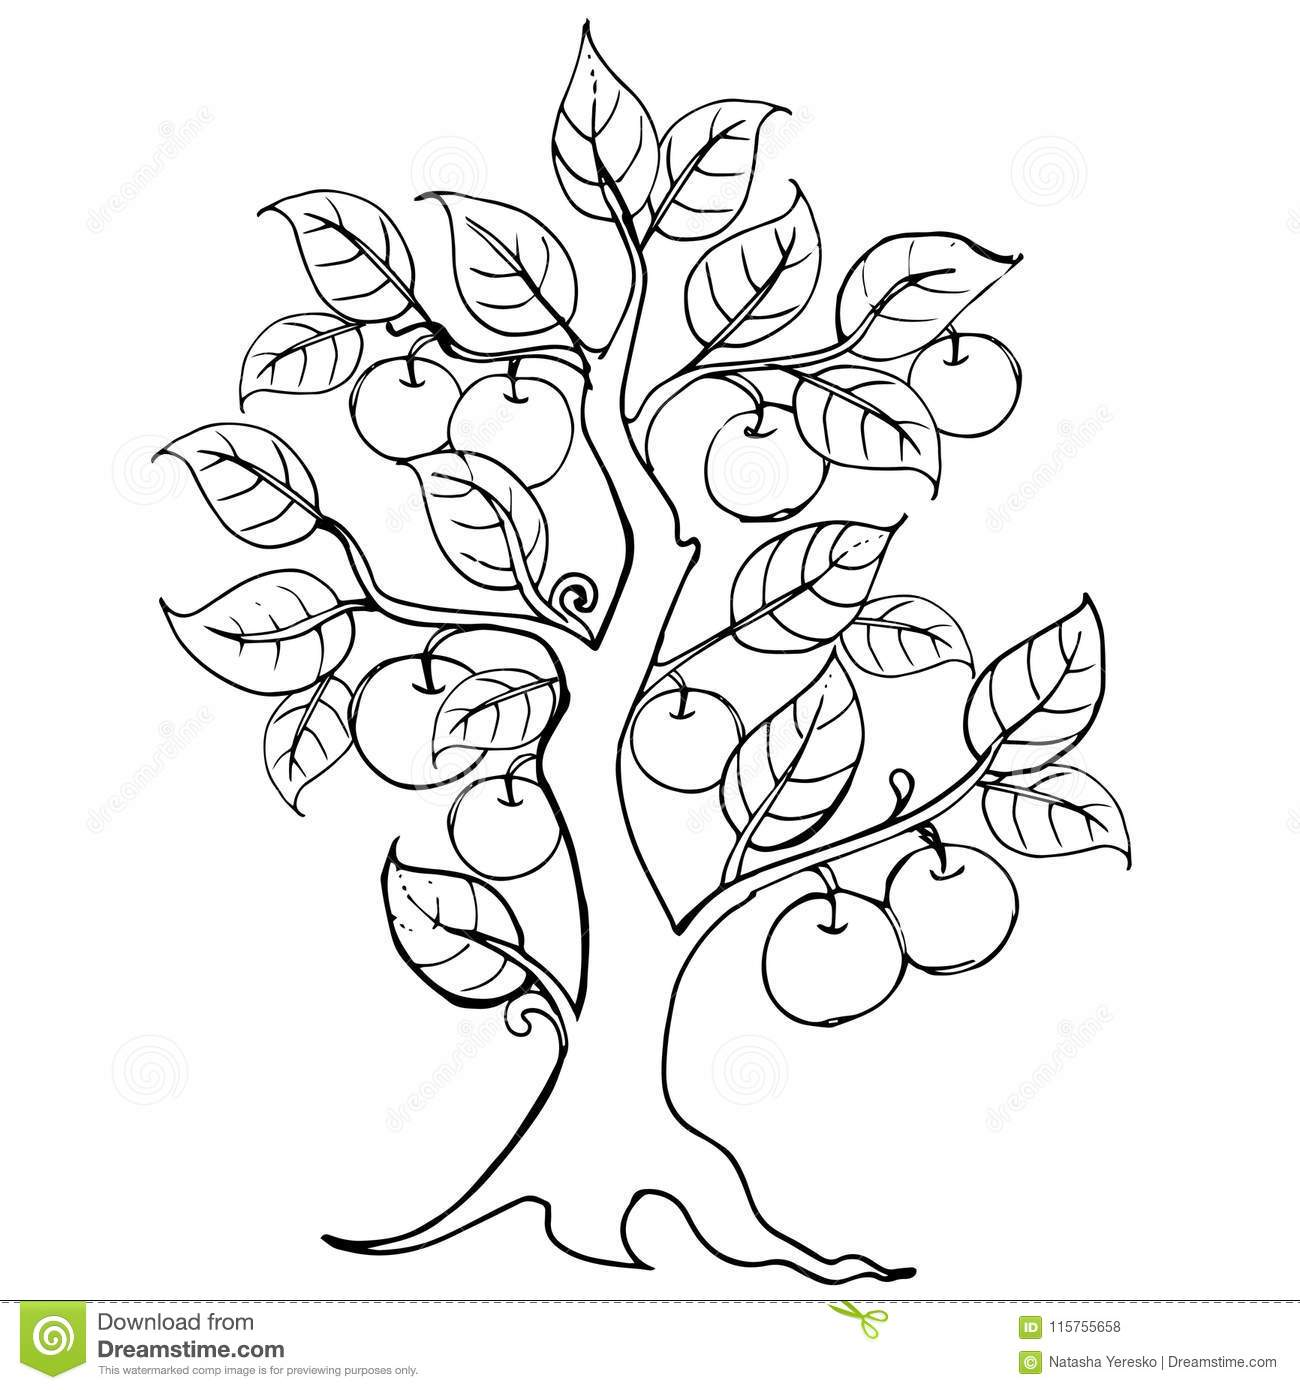 drawing apple tree vector artwork illustration for